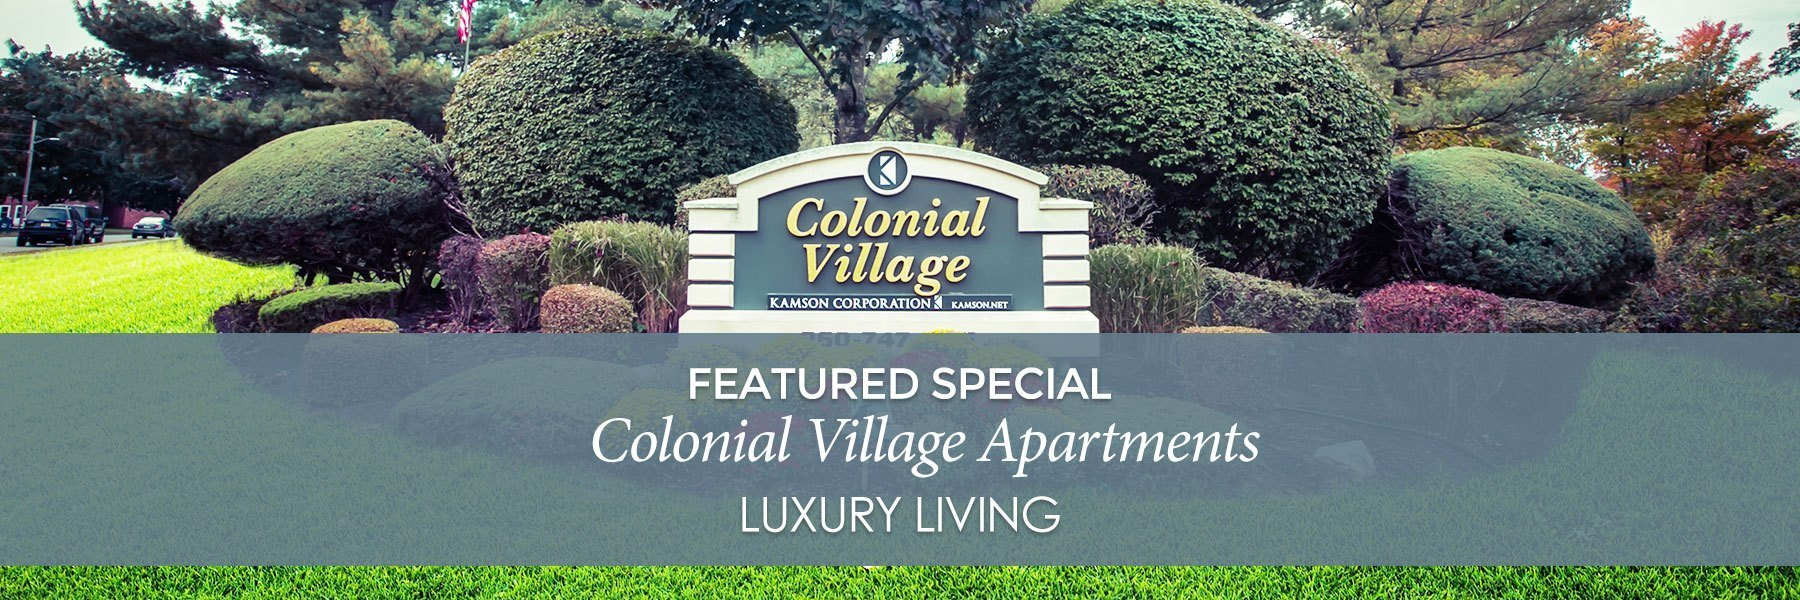 Colonial Village Apartments For Rent in Plainville, CT Specials